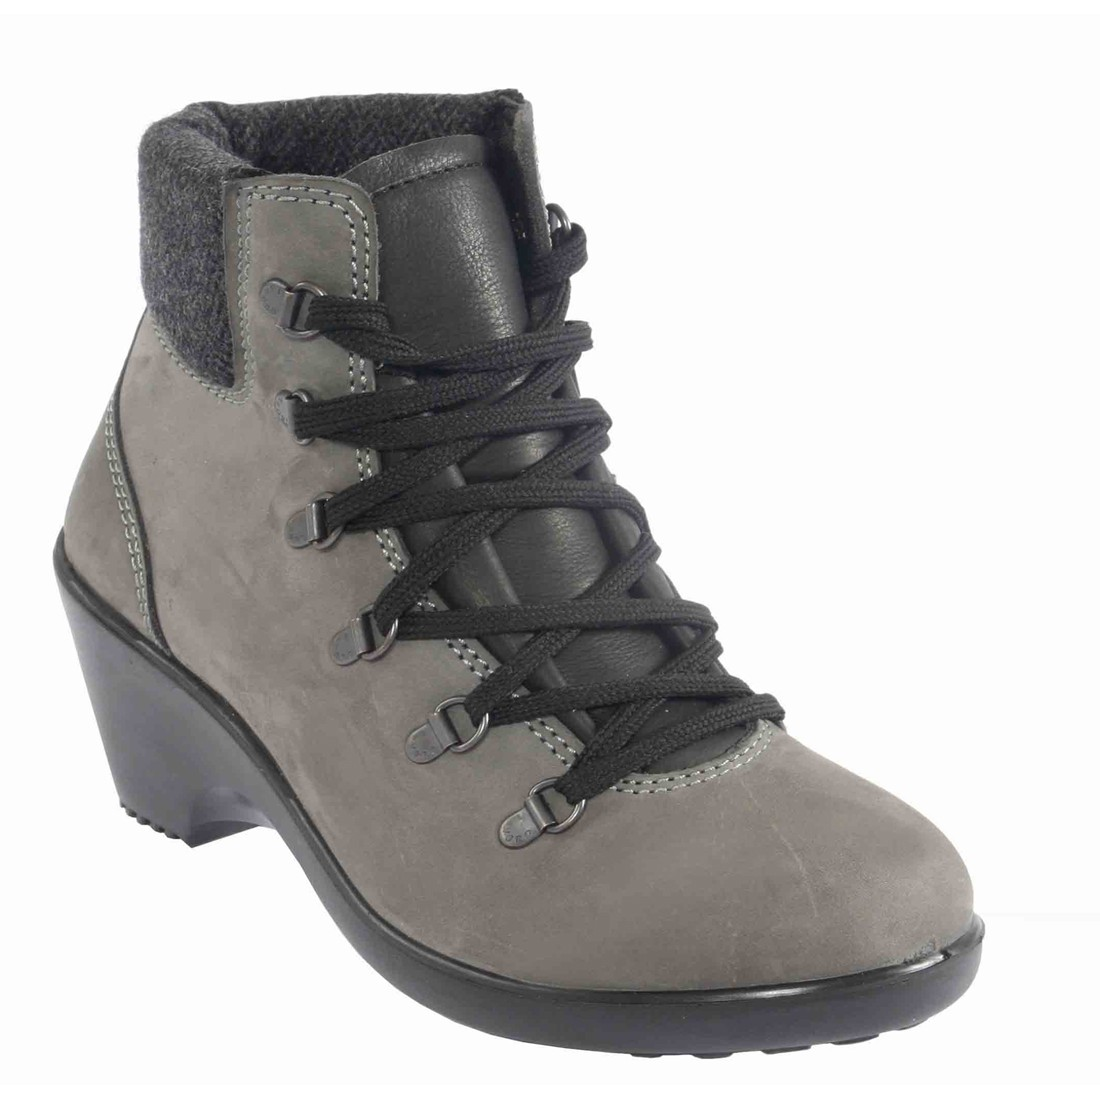 Geena Ladies Safety Boots From Lavoro With Nubuck Leather